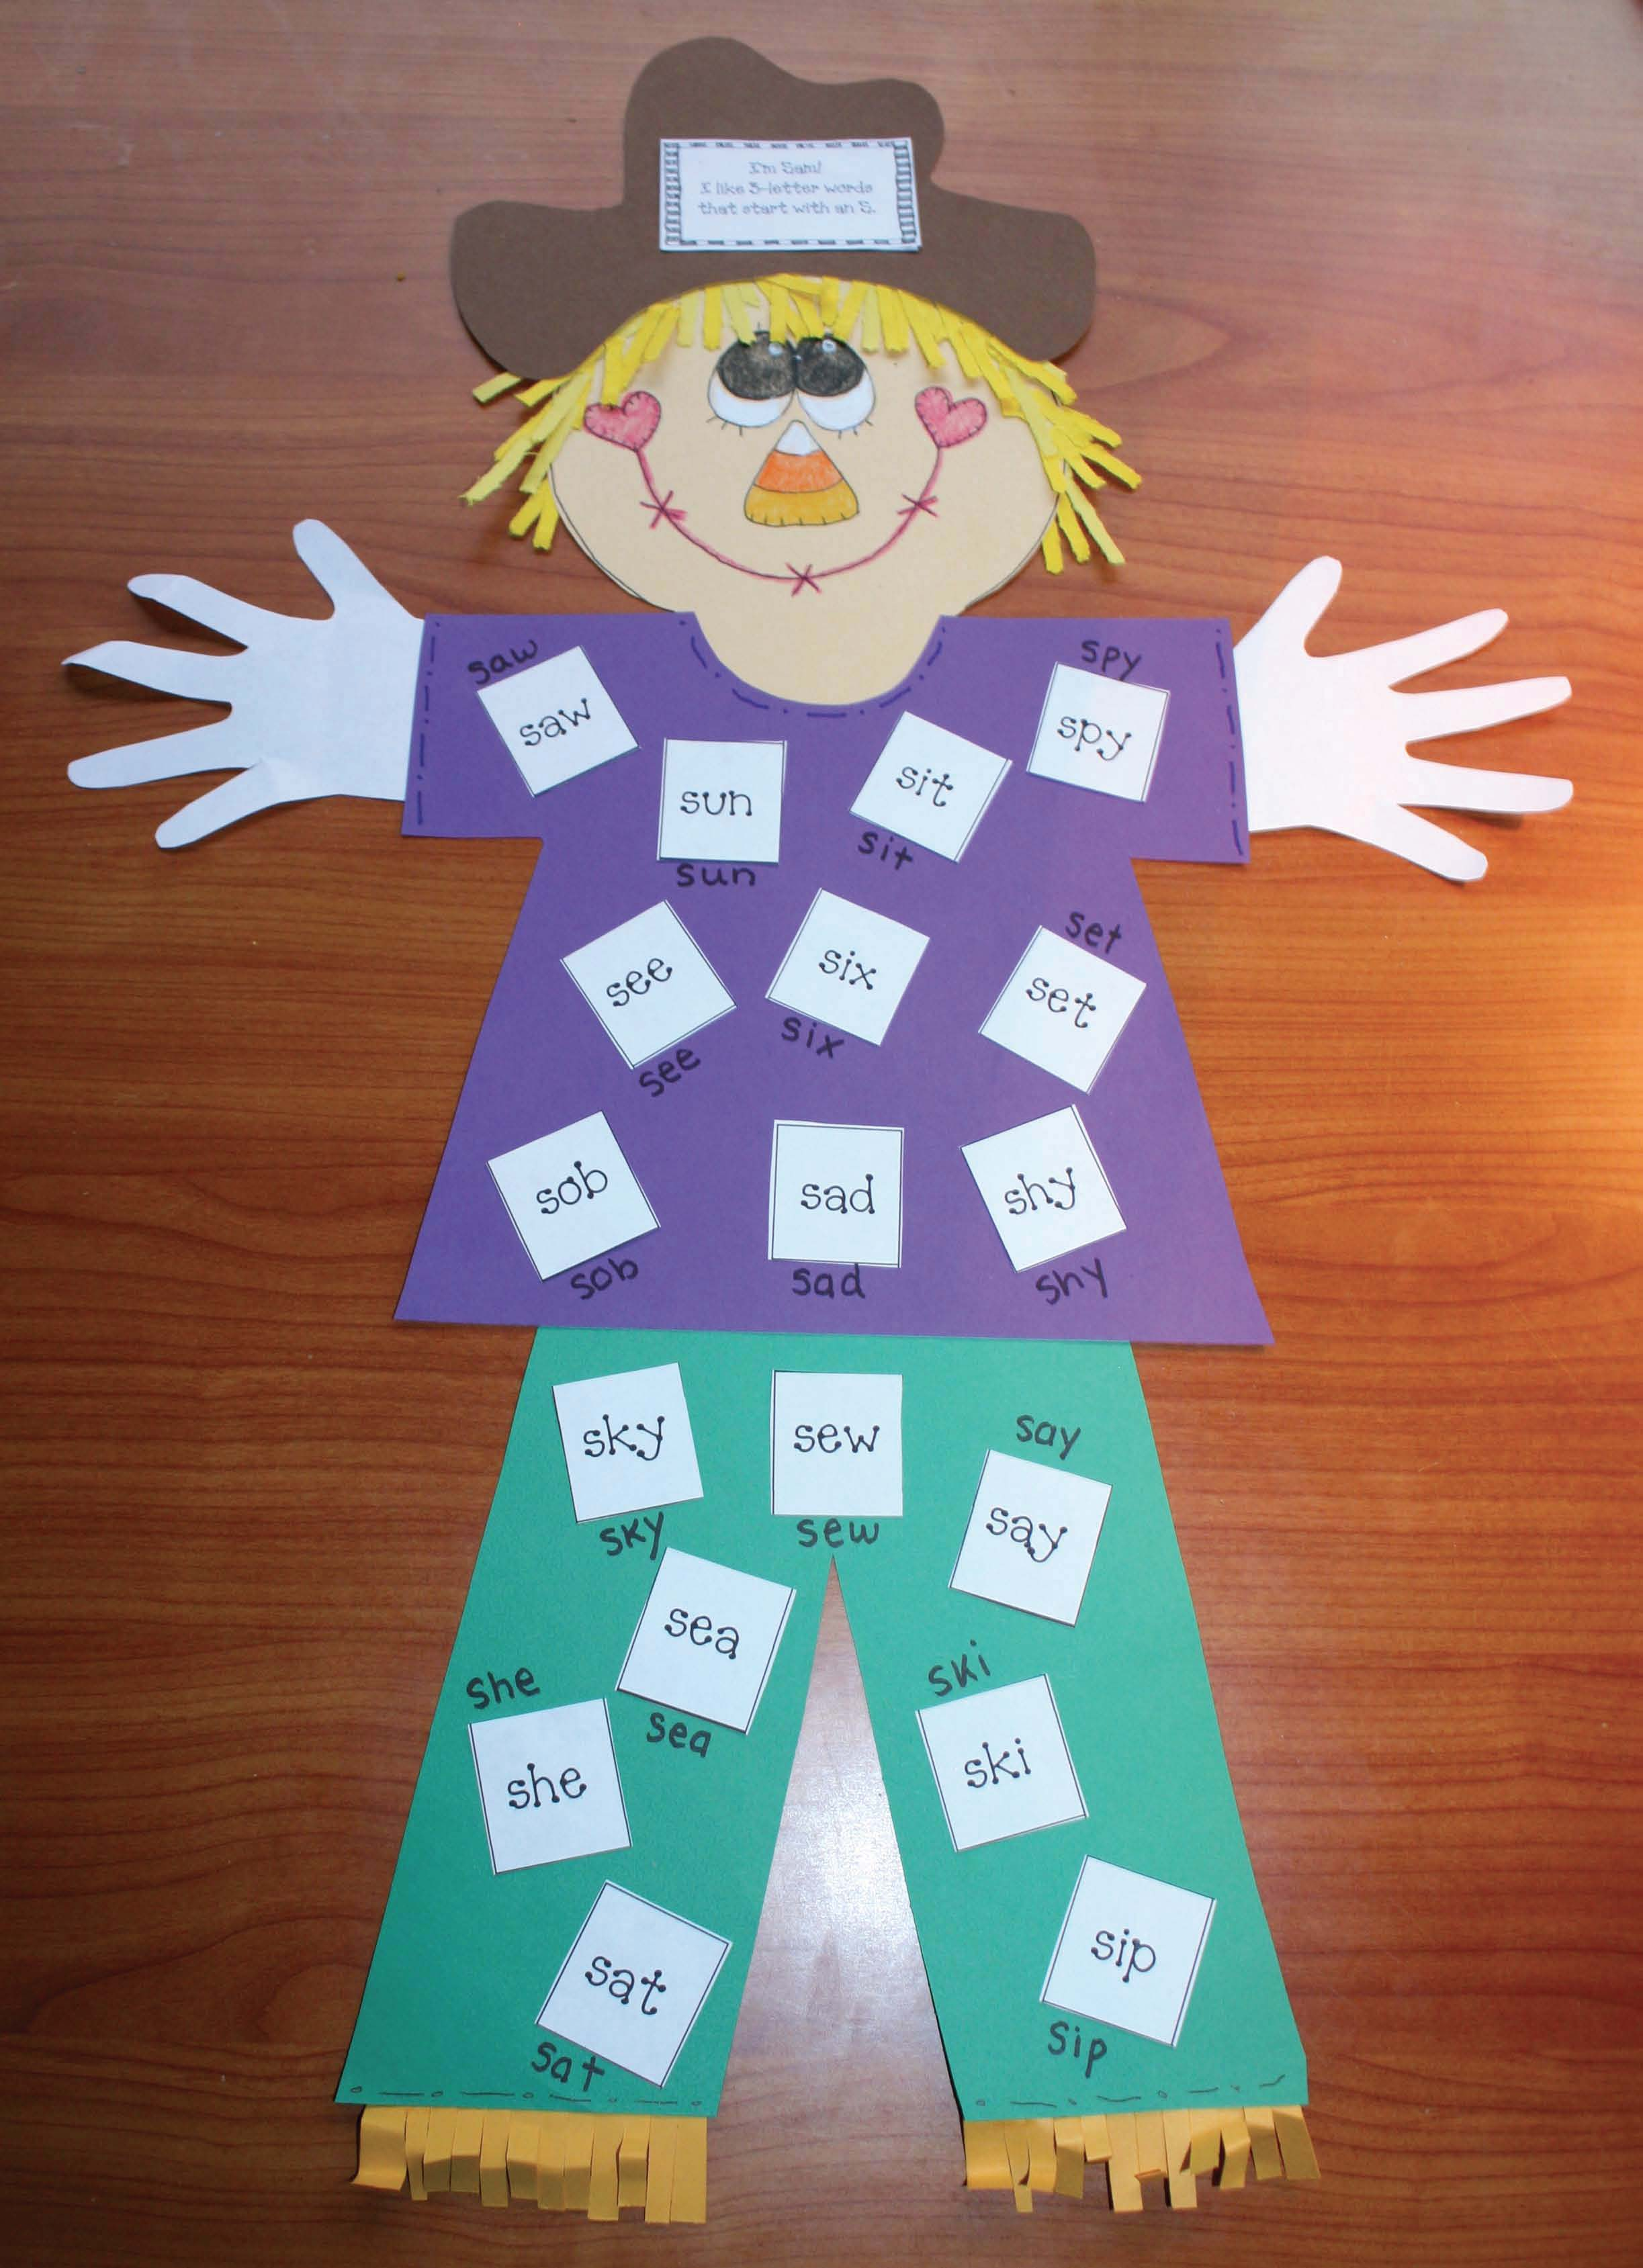 scarecrow crafts, scarecrow activities, common core scarecrows, alphabet activities, blends, list of contractions, list of compound words, list of words that rhyme with scare, list of words that rhyme with crow, odd and even activities, vowel activities, scarecrow crafts, scarecrow shapes, common core scarecrows, shape crafts, shape games, alphabet games, odd and even activities, common core scarecrows